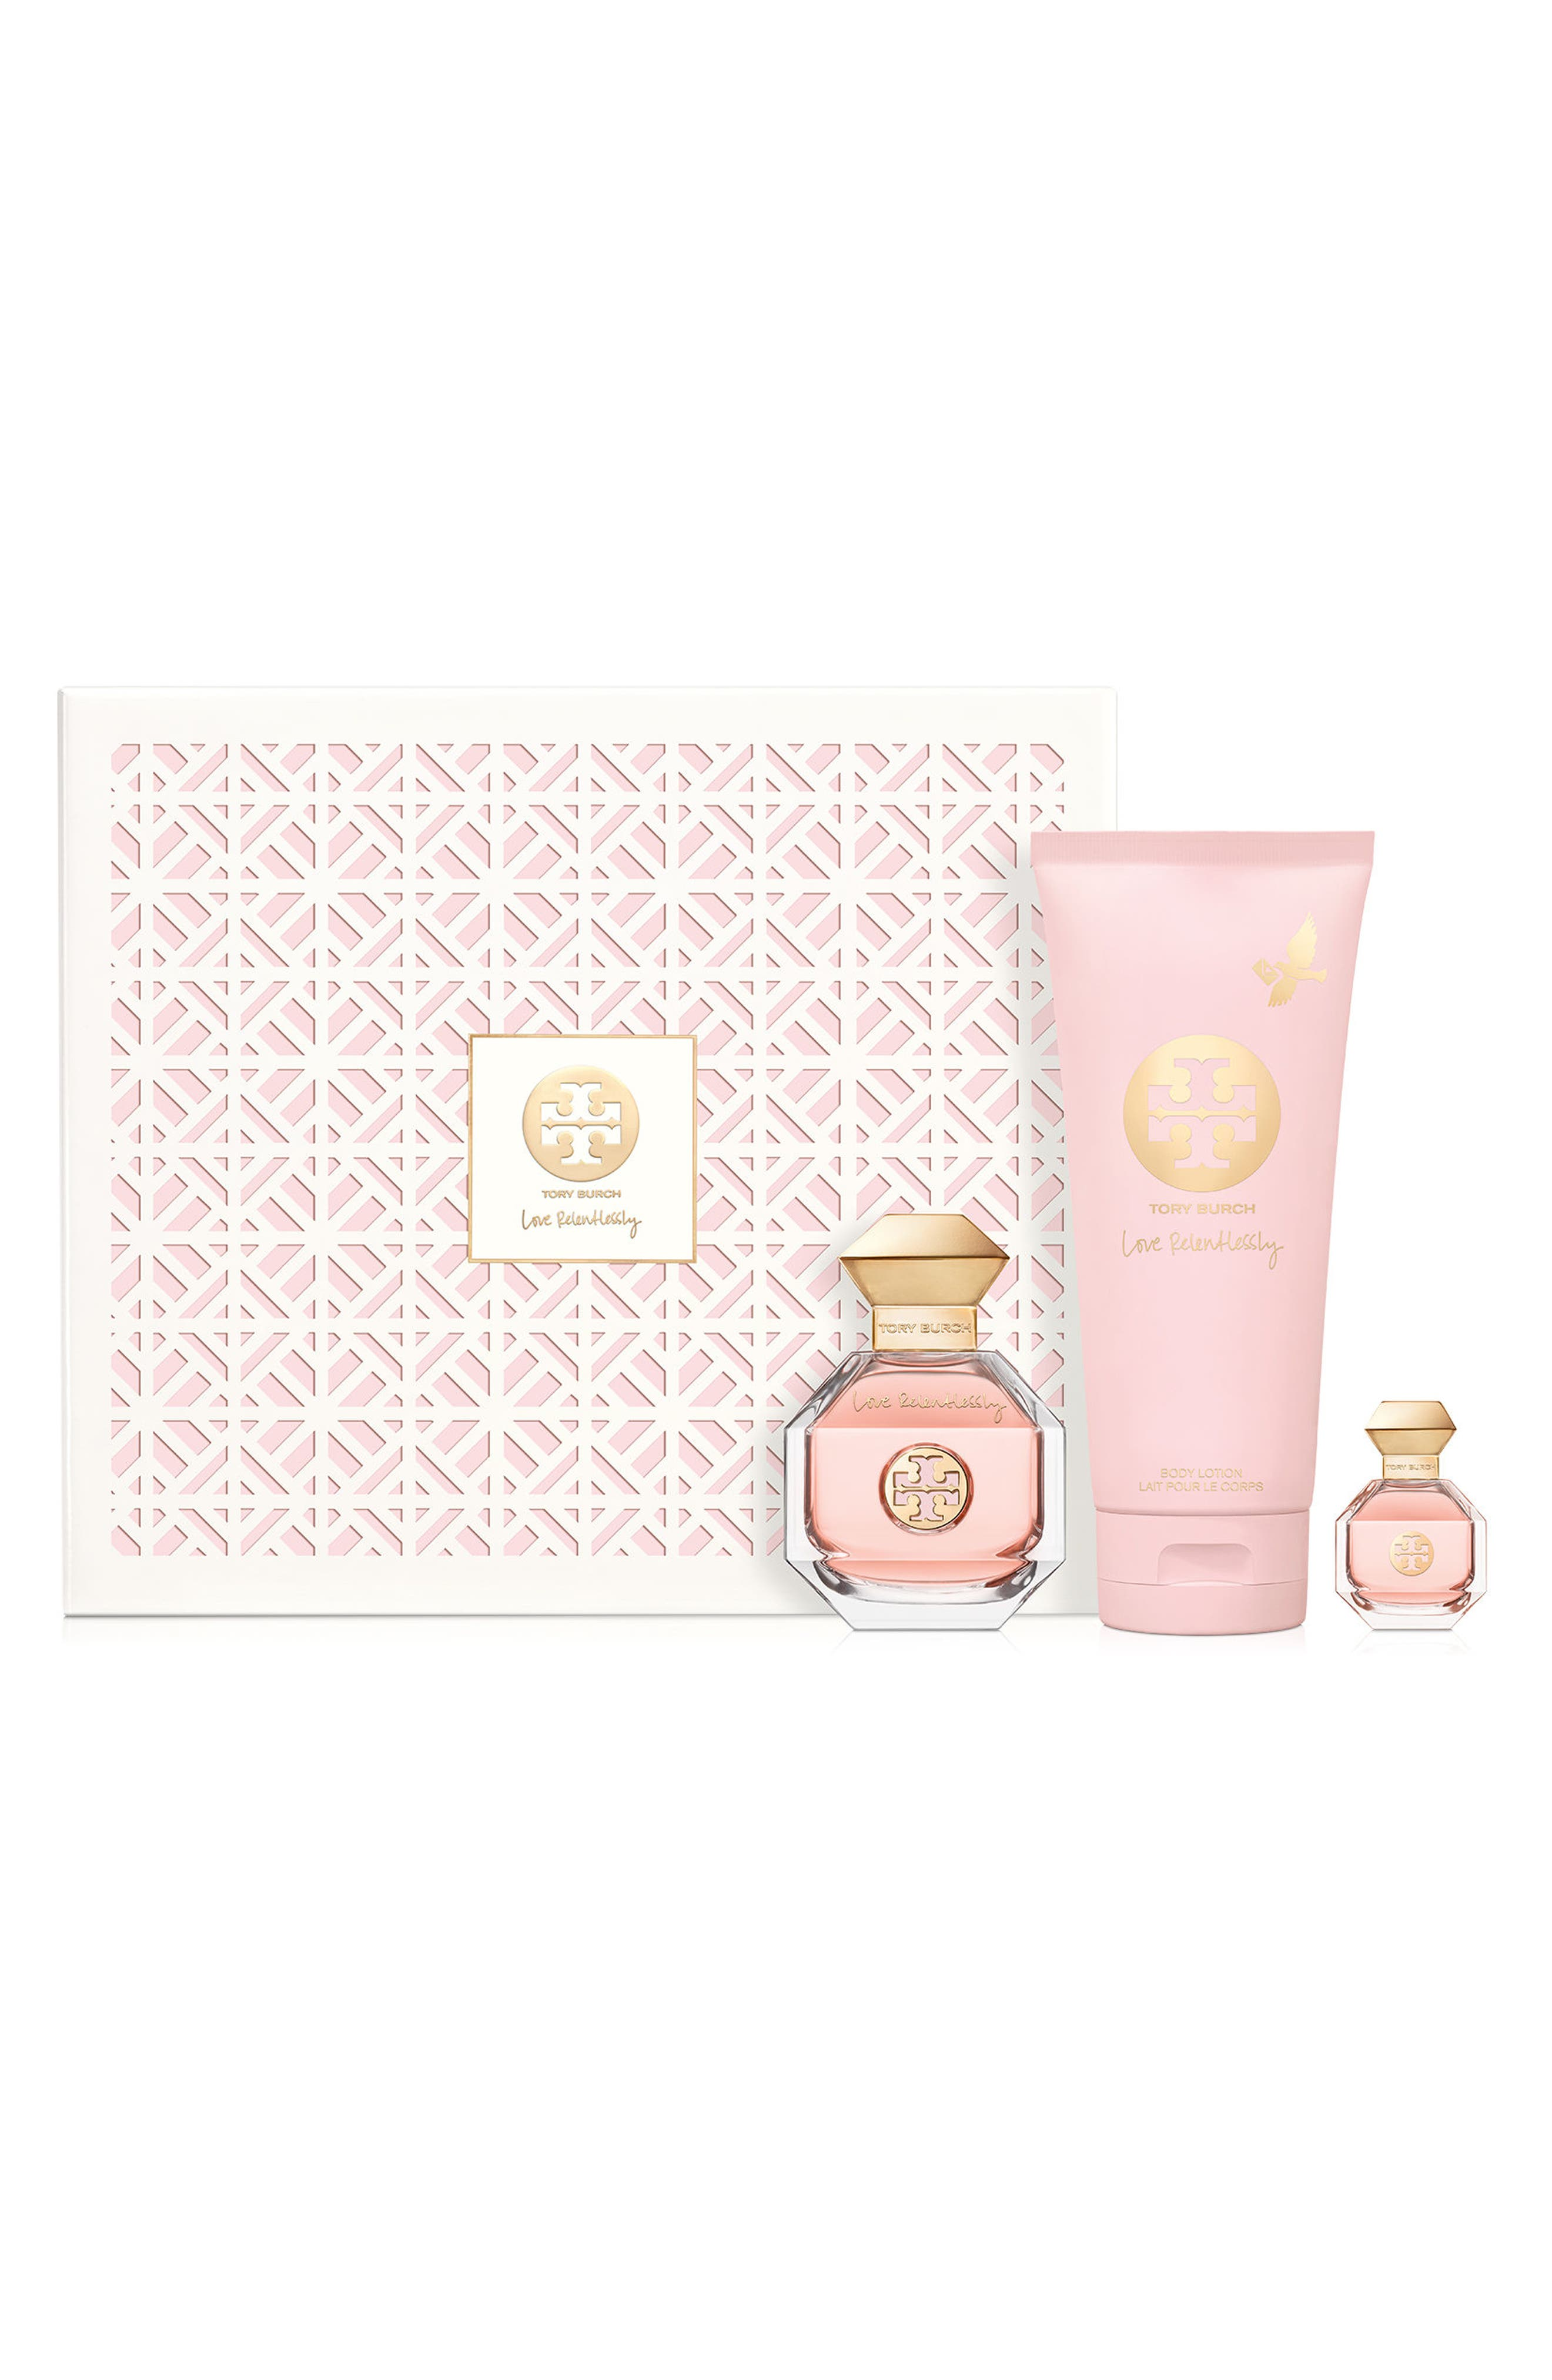 Love Relentlessly Deluxe Set,                             Main thumbnail 1, color,                             No Color